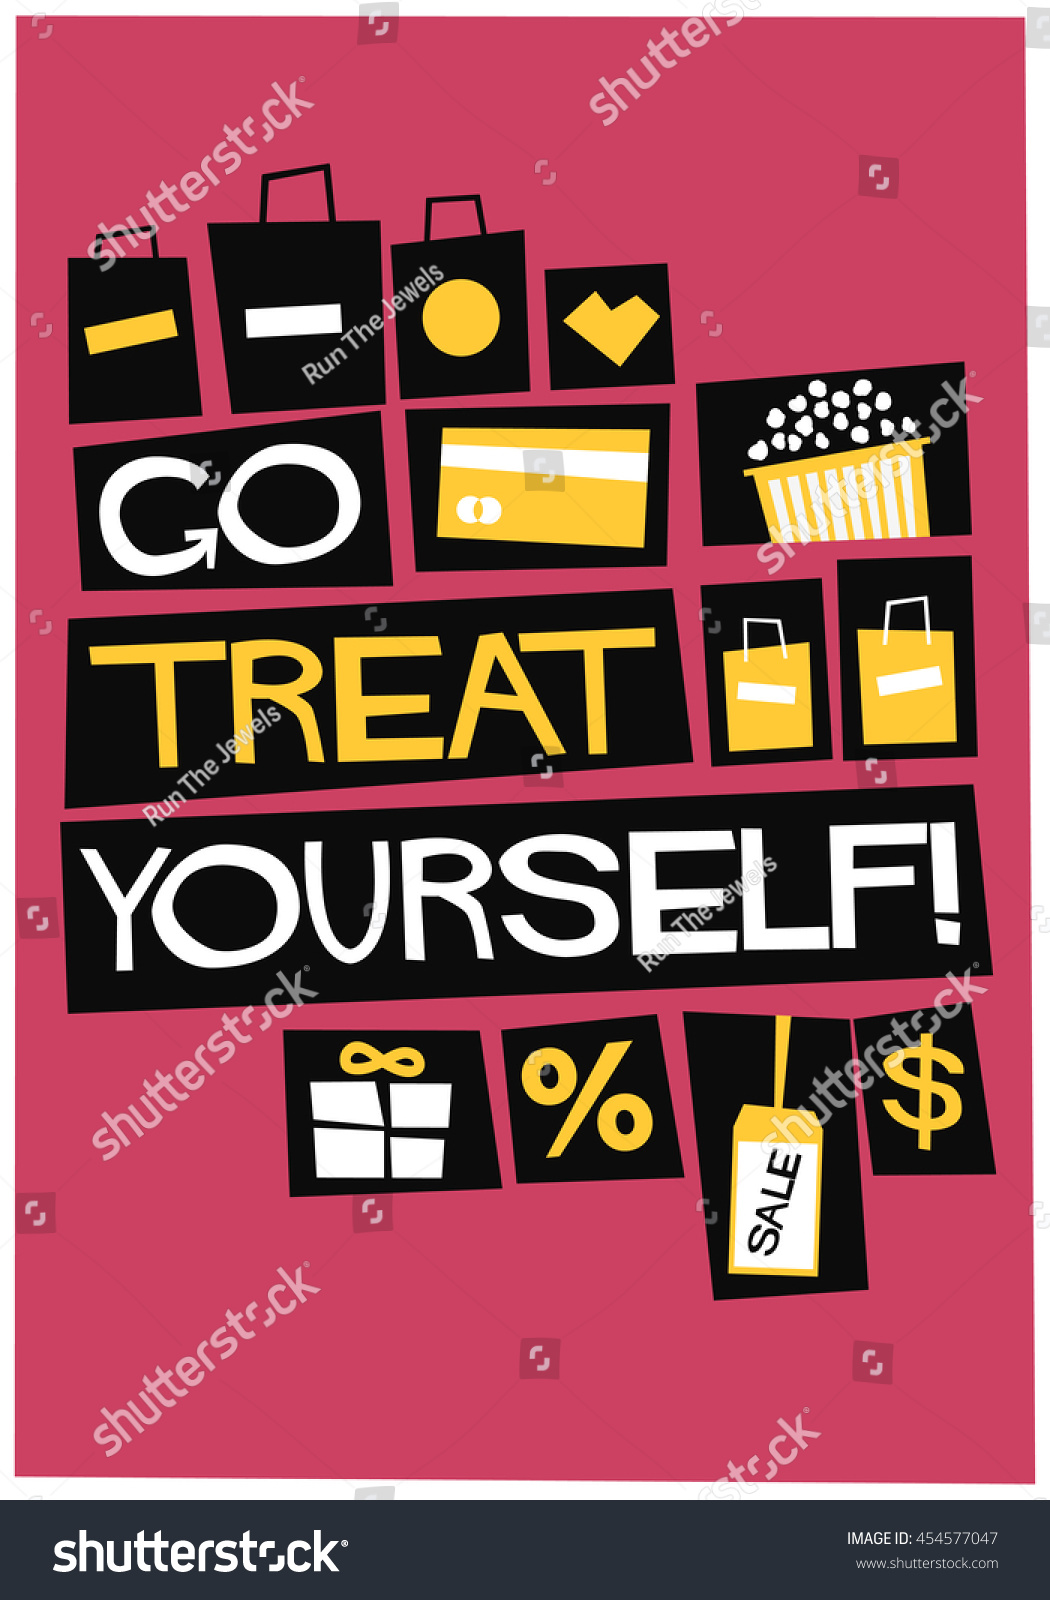 Design poster yourself - Go Treat Yourself Flat Style Vector Illustration Shopping Quote Poster Design